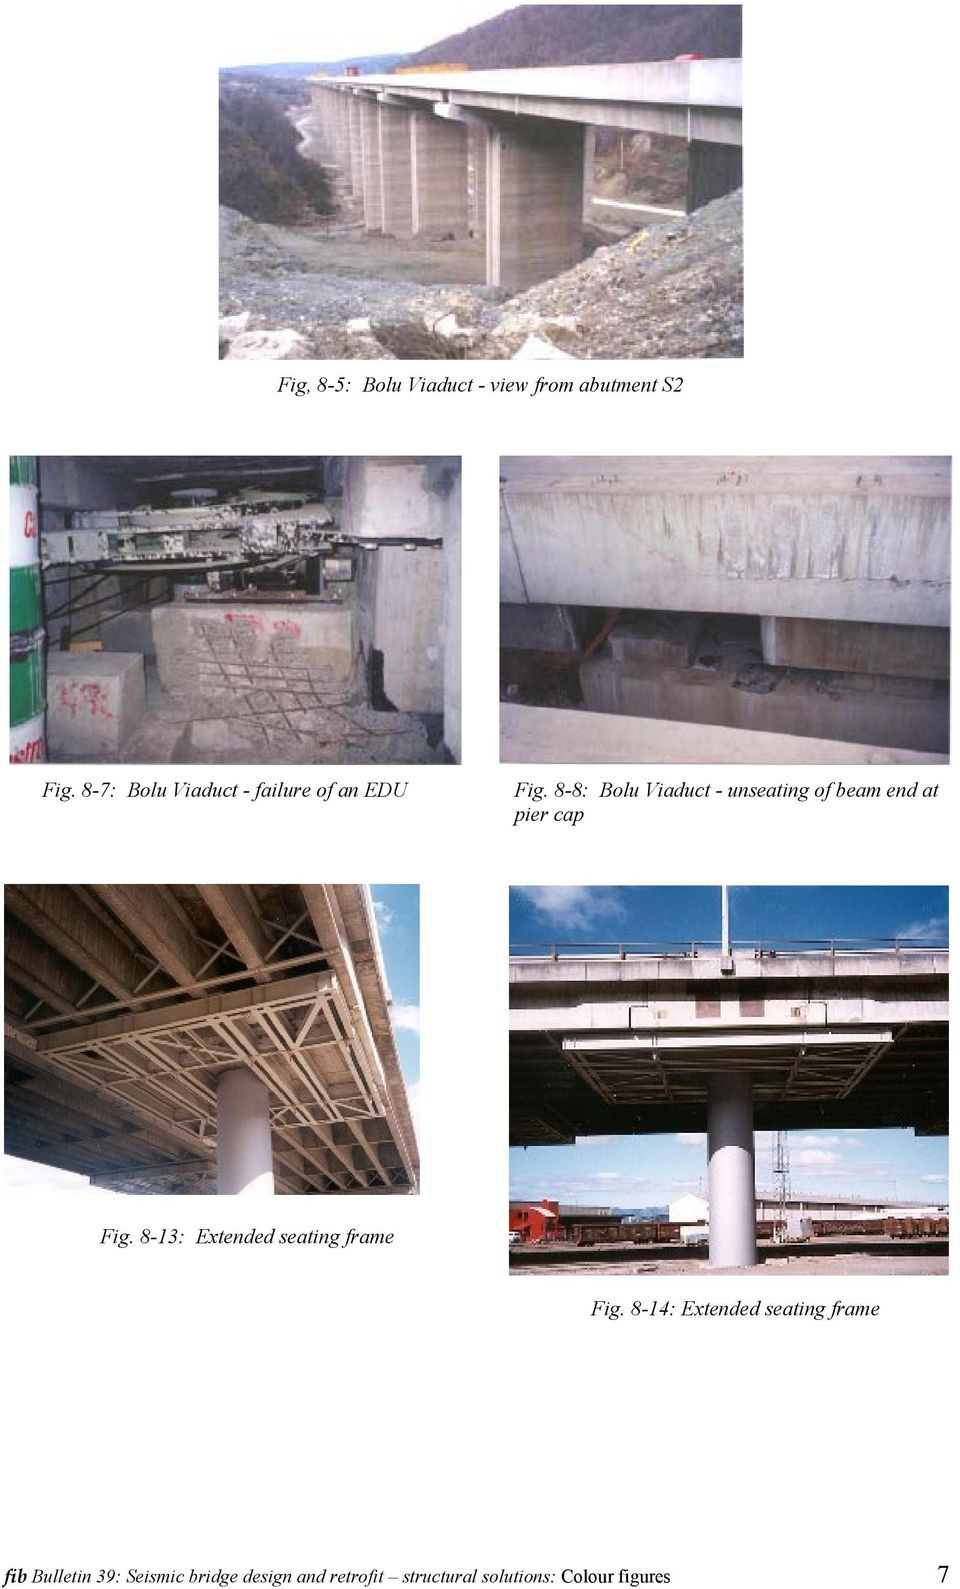 8-8: Bolu Viaduct - unseating of beam end at pier cap Fig.